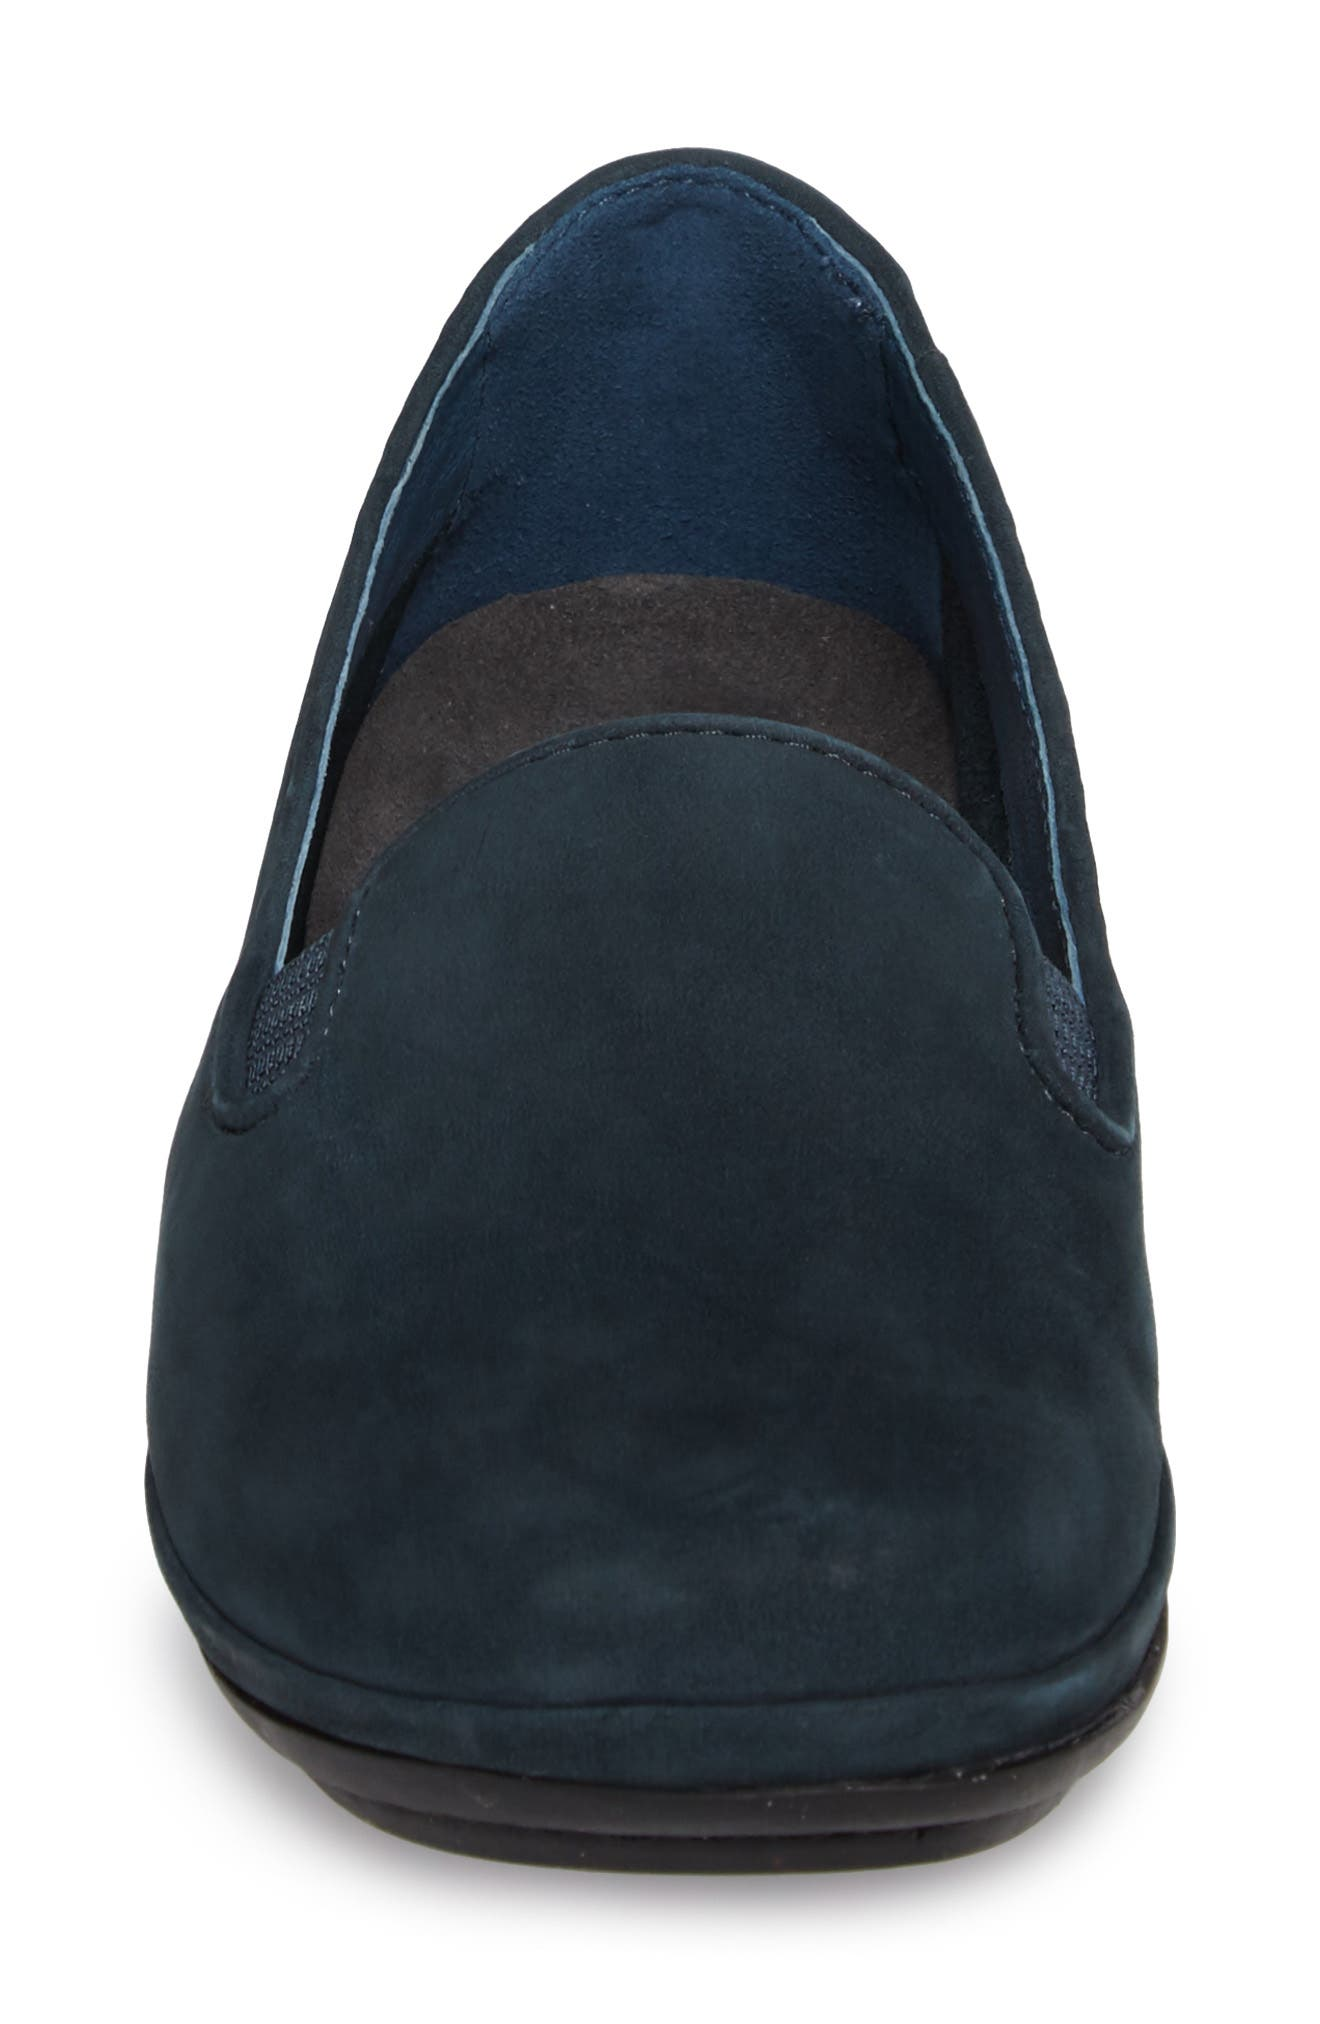 'Right Nina' Leather Flat,                             Alternate thumbnail 4, color,                             Dark Blue Leather